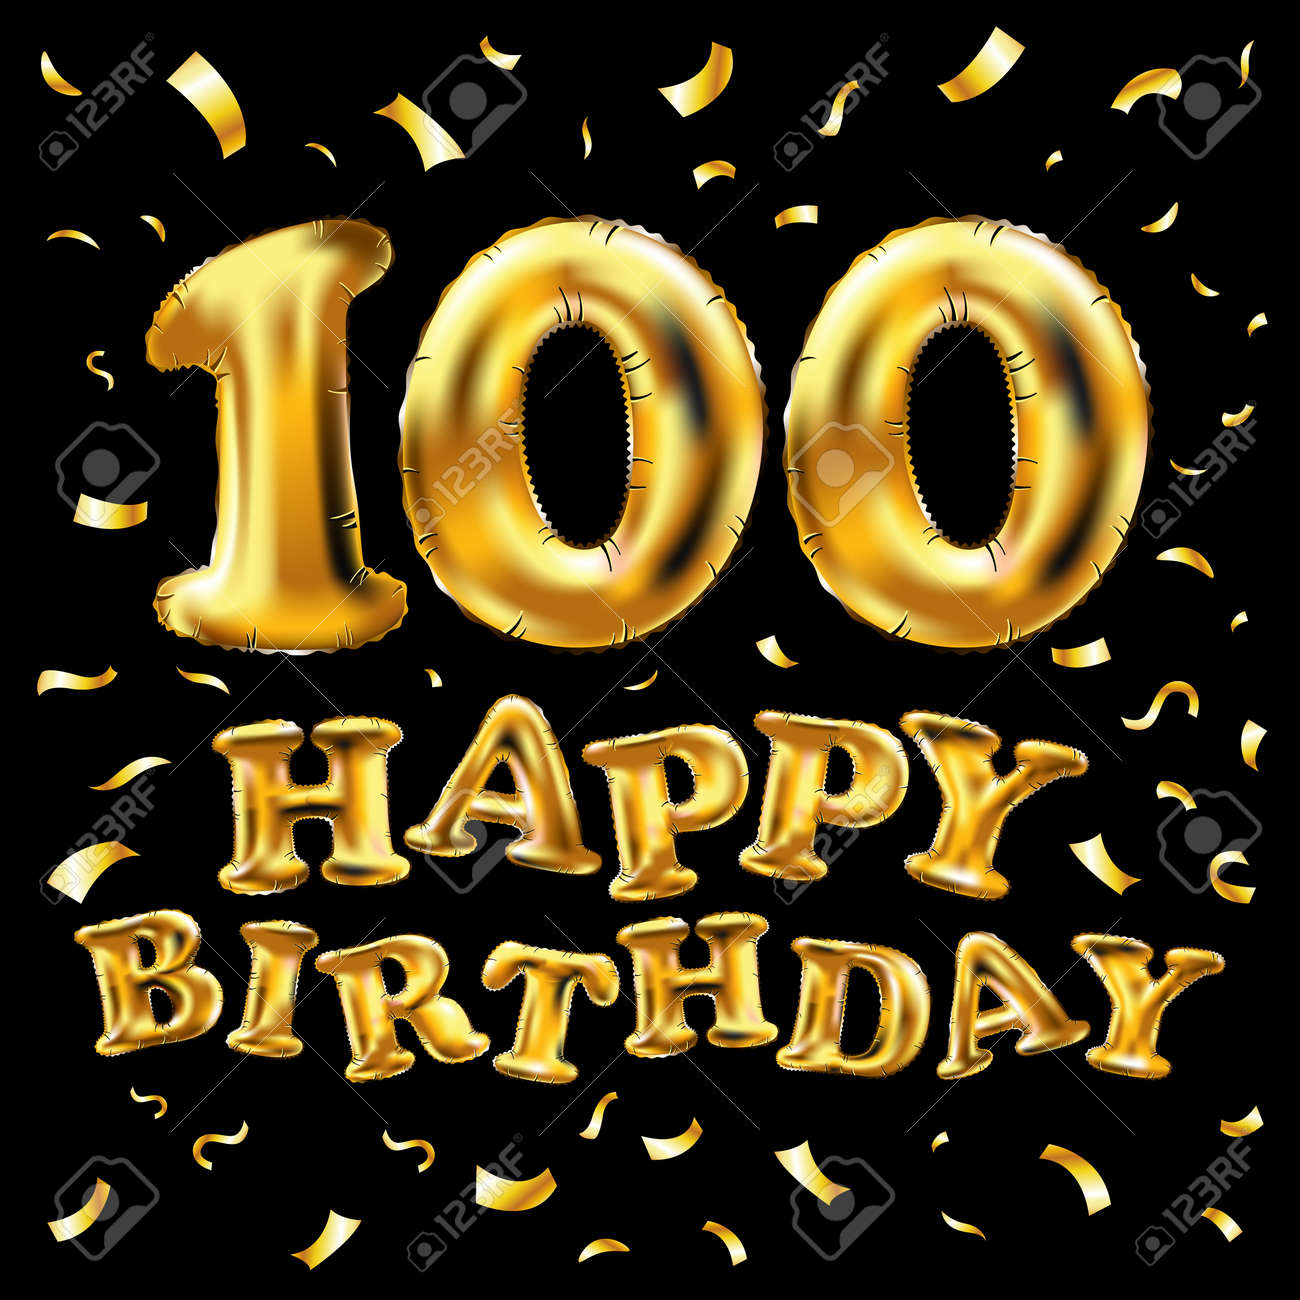 Happy 100th Birthday Celebration Banner With Gold Balloons And Golden Confetti Glitters 3d Illustration Design